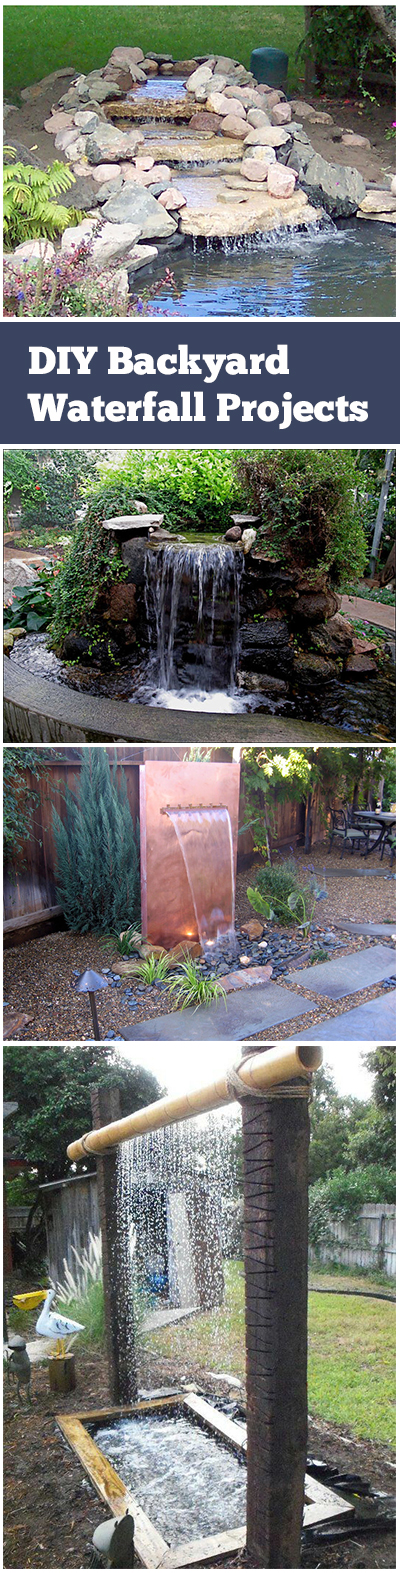 Diy garden waterfalls bless my weeds for Diy waterfall pond ideas